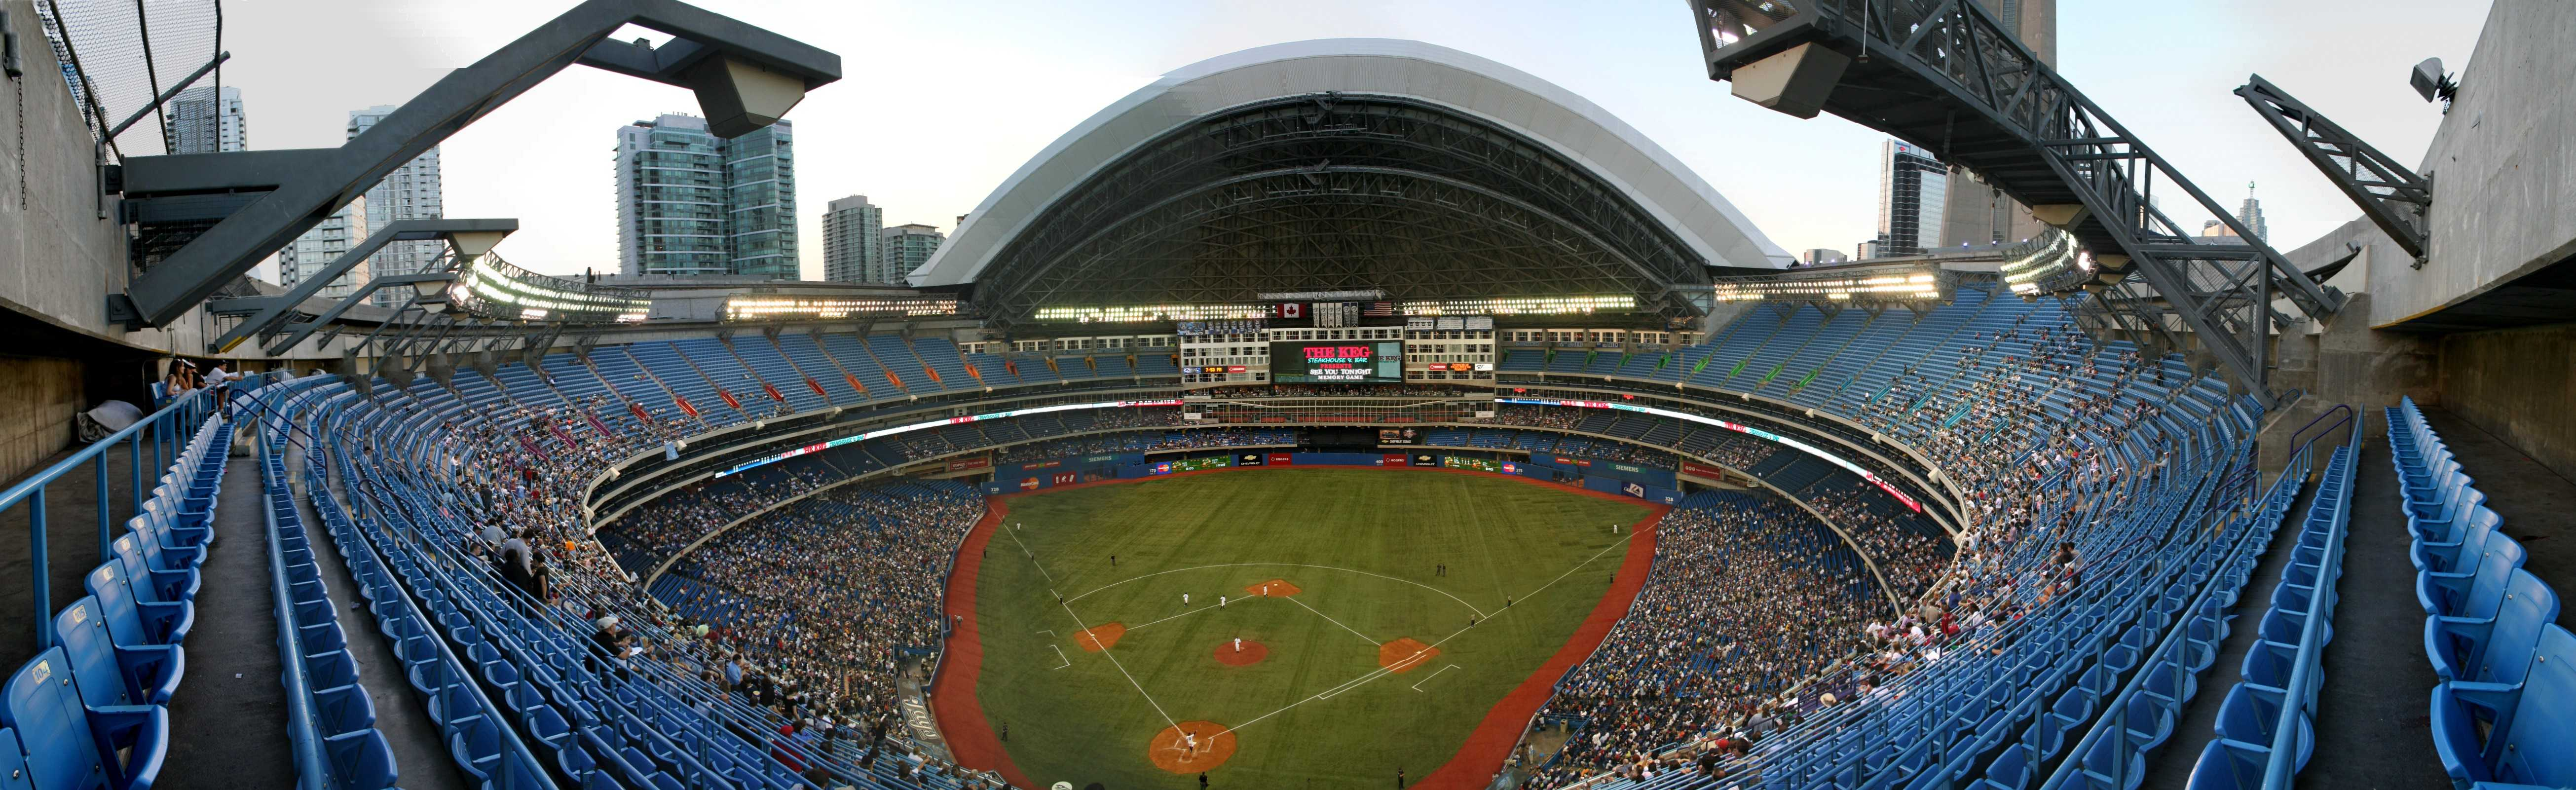 Rogers Centre- Panoramic view of Blue Jays game with open roof.